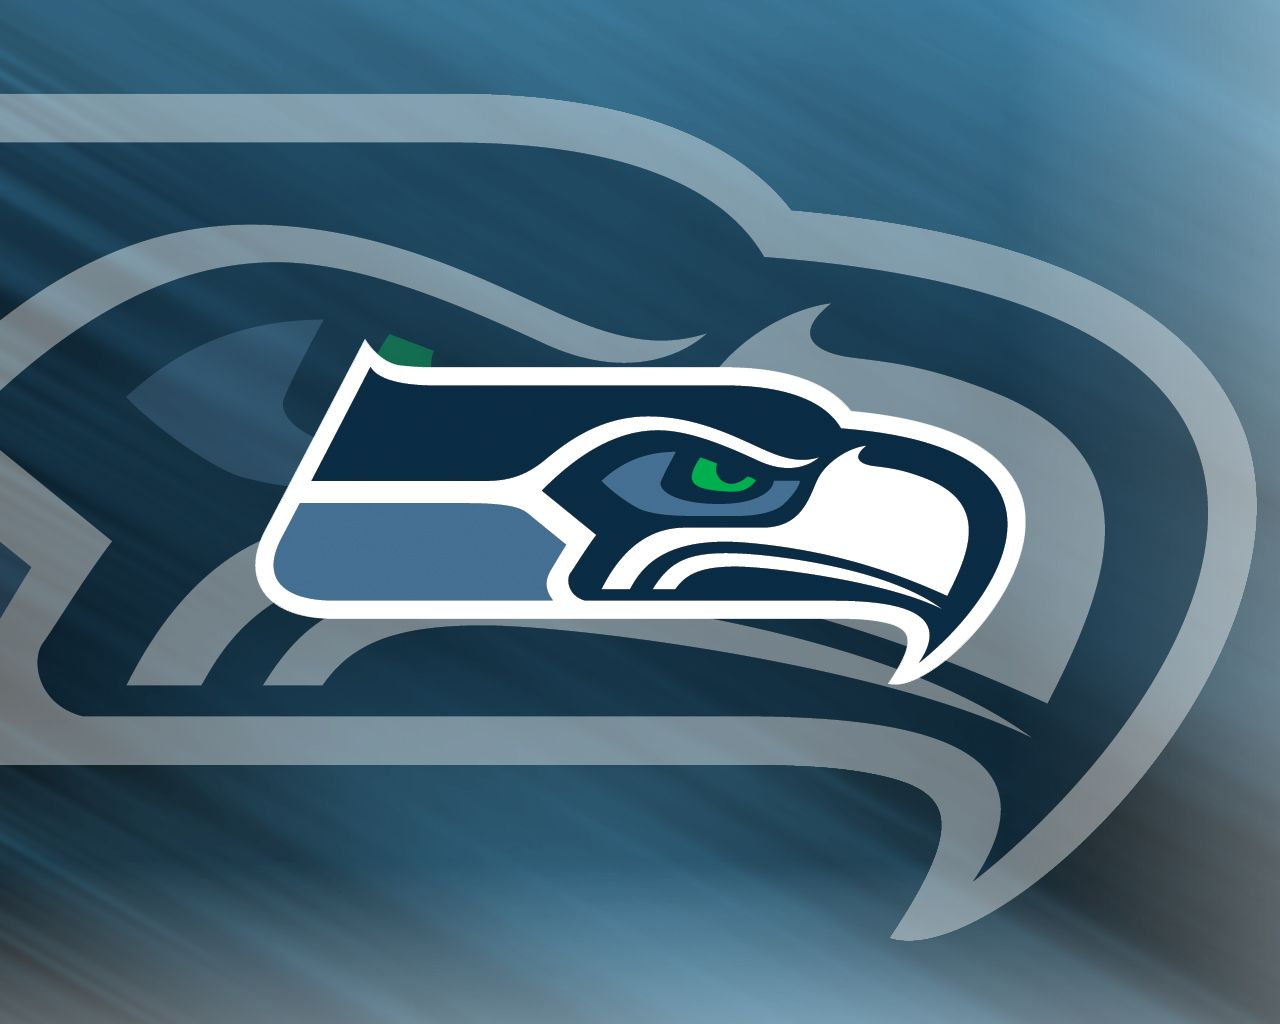 NFL Wallpapers NFL Seattle Seahawks wallpaper Index of